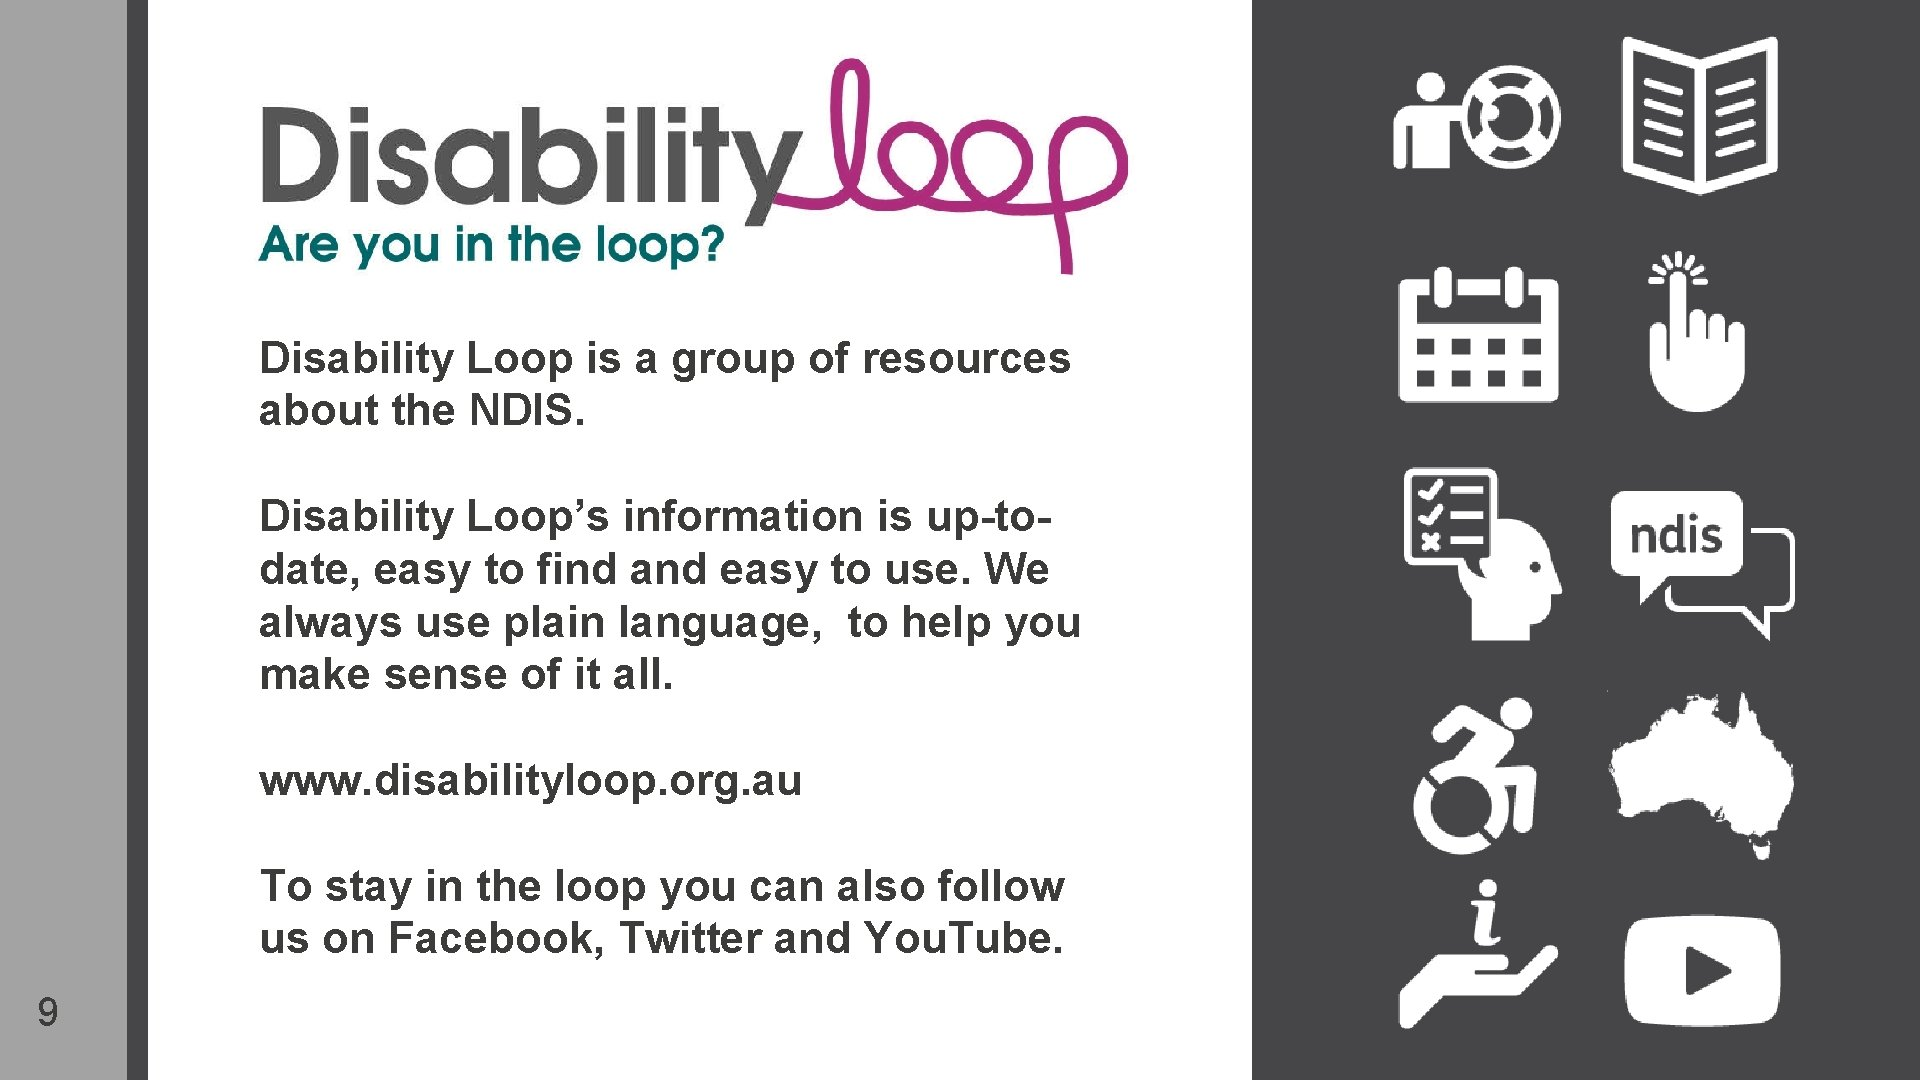 Disability Loop is a group of resources about the NDIS. Disability Loop's information is